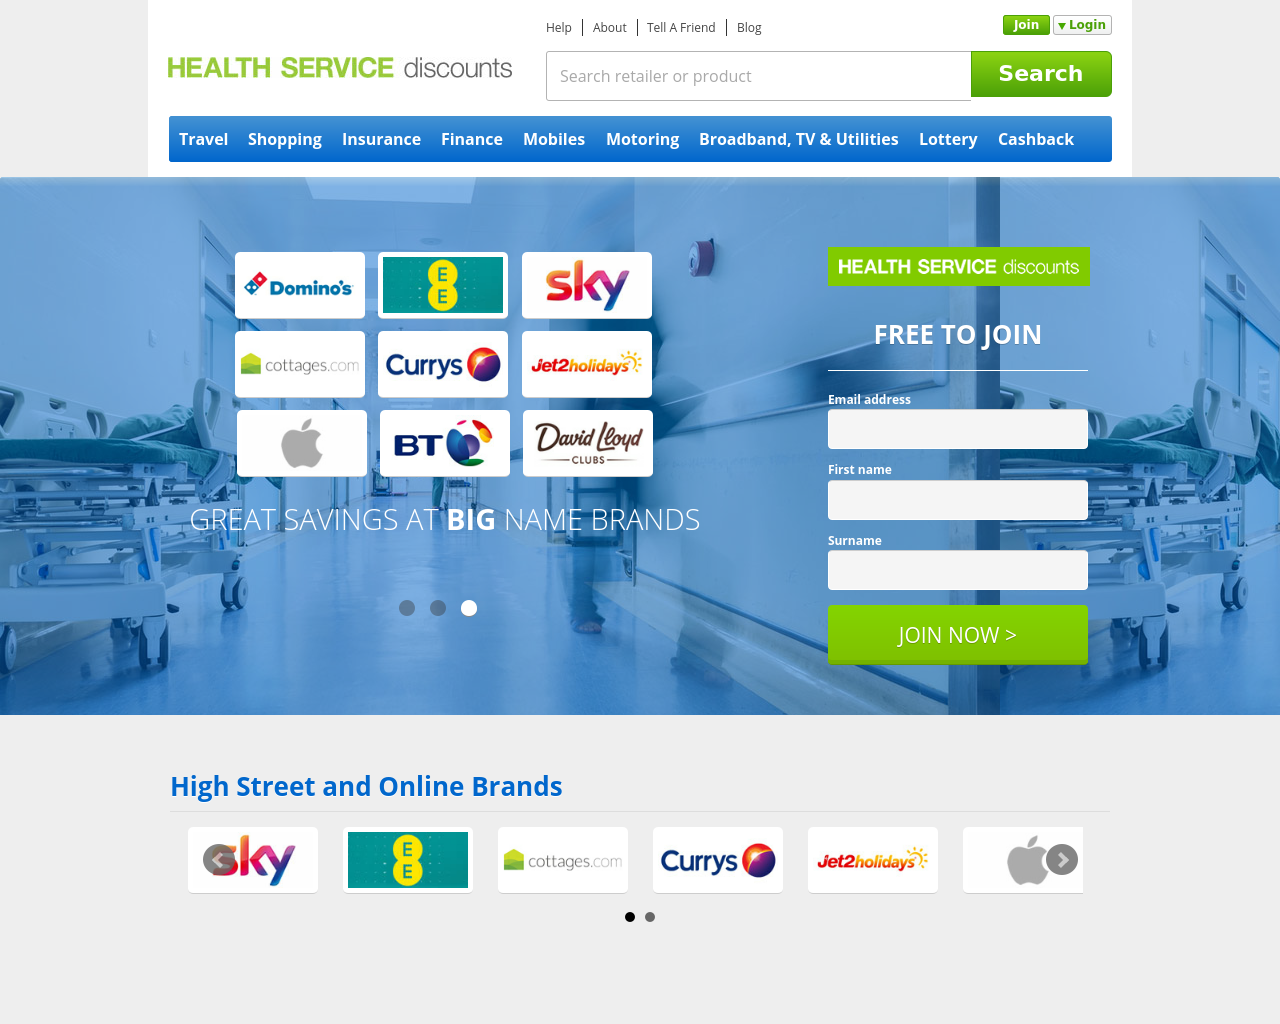 Health-Service-Discounts-Advertising-Reviews-Pricing